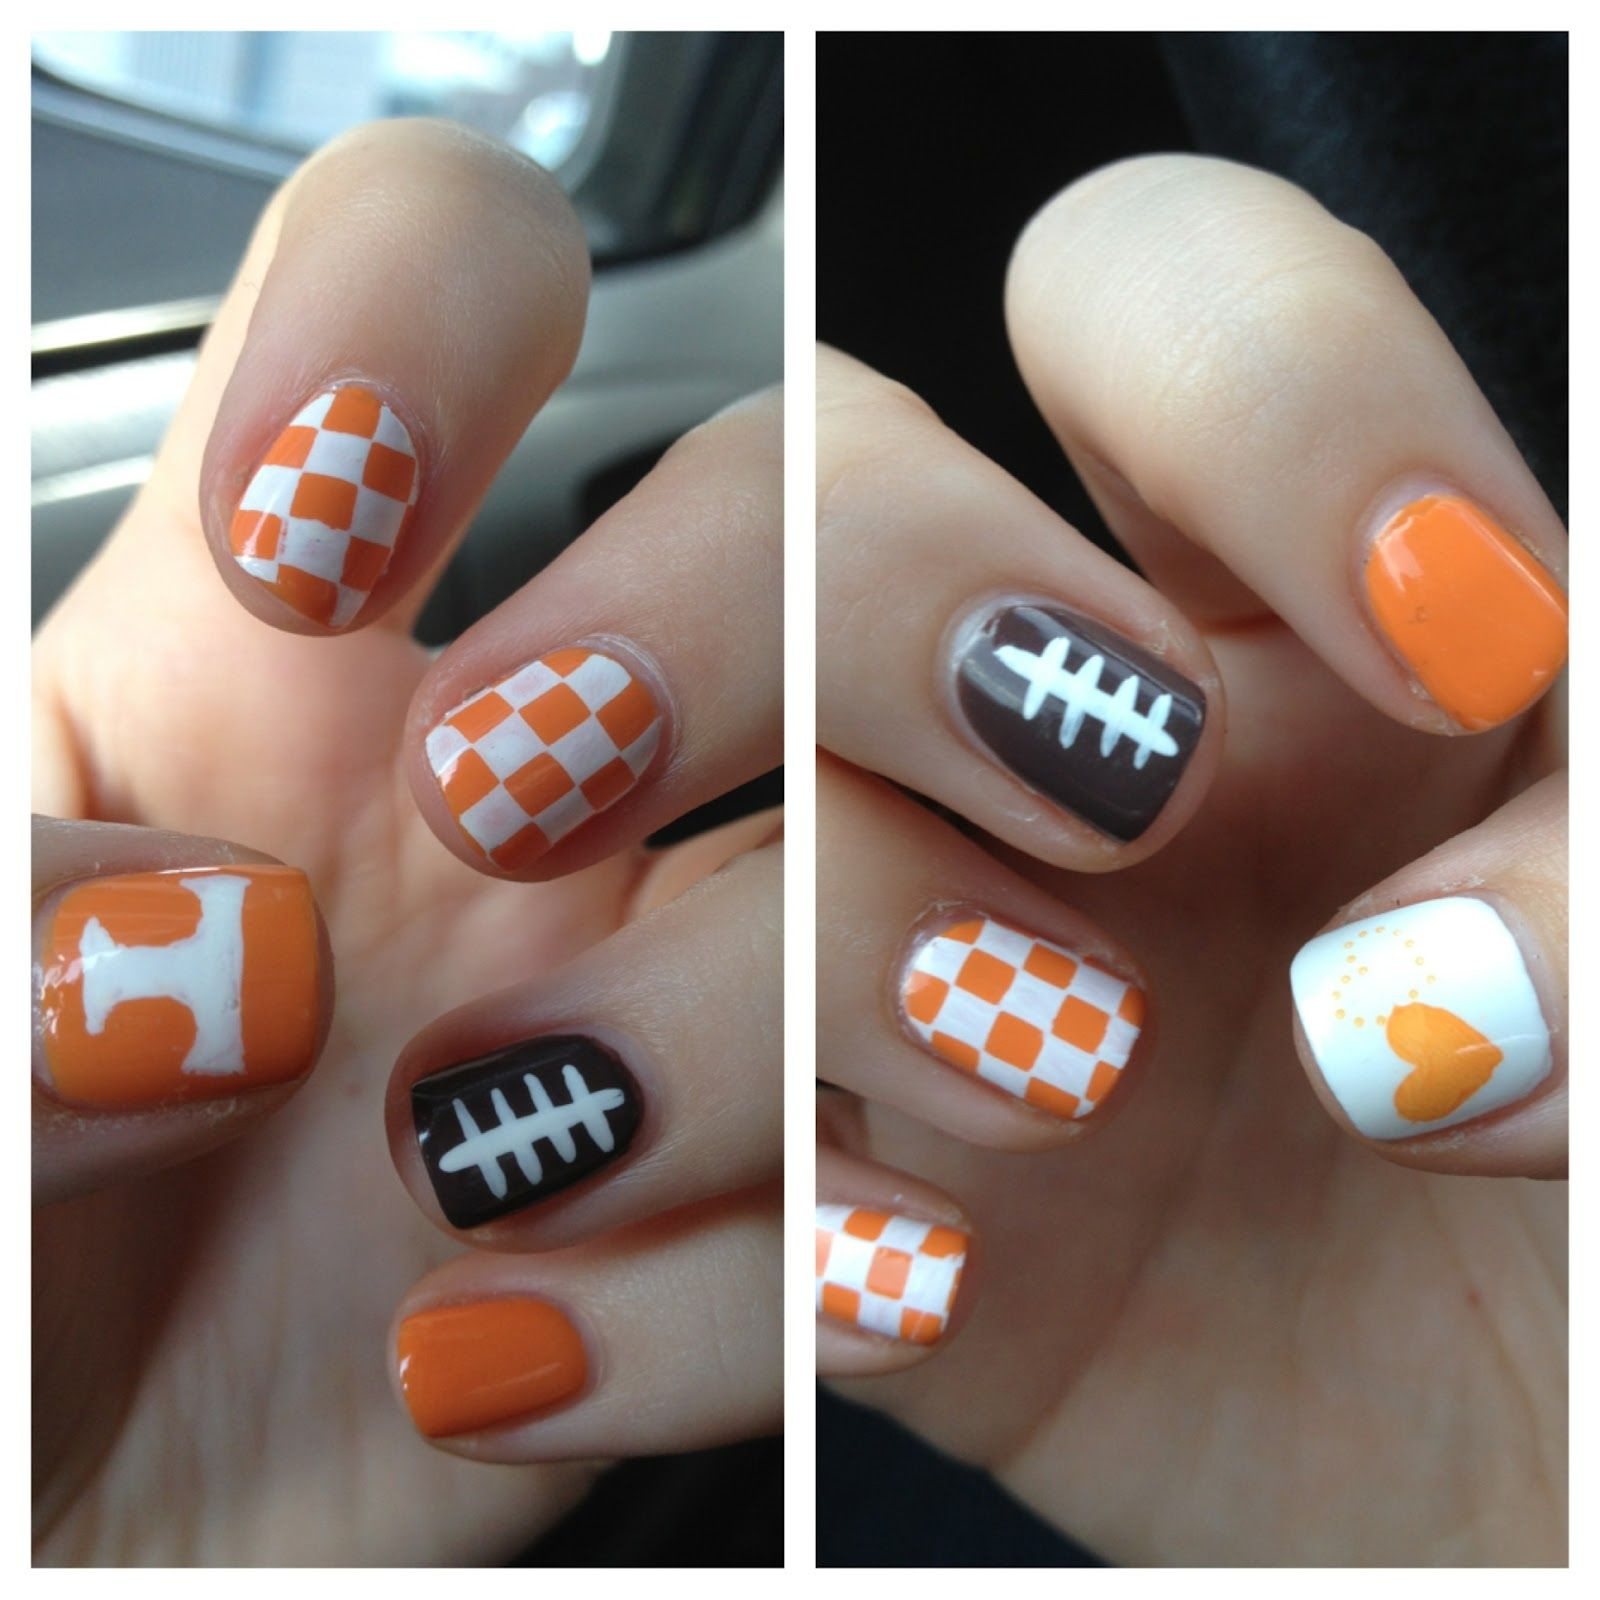 Go Vols! Love the nails, but a waste of time for this Art teacher ...